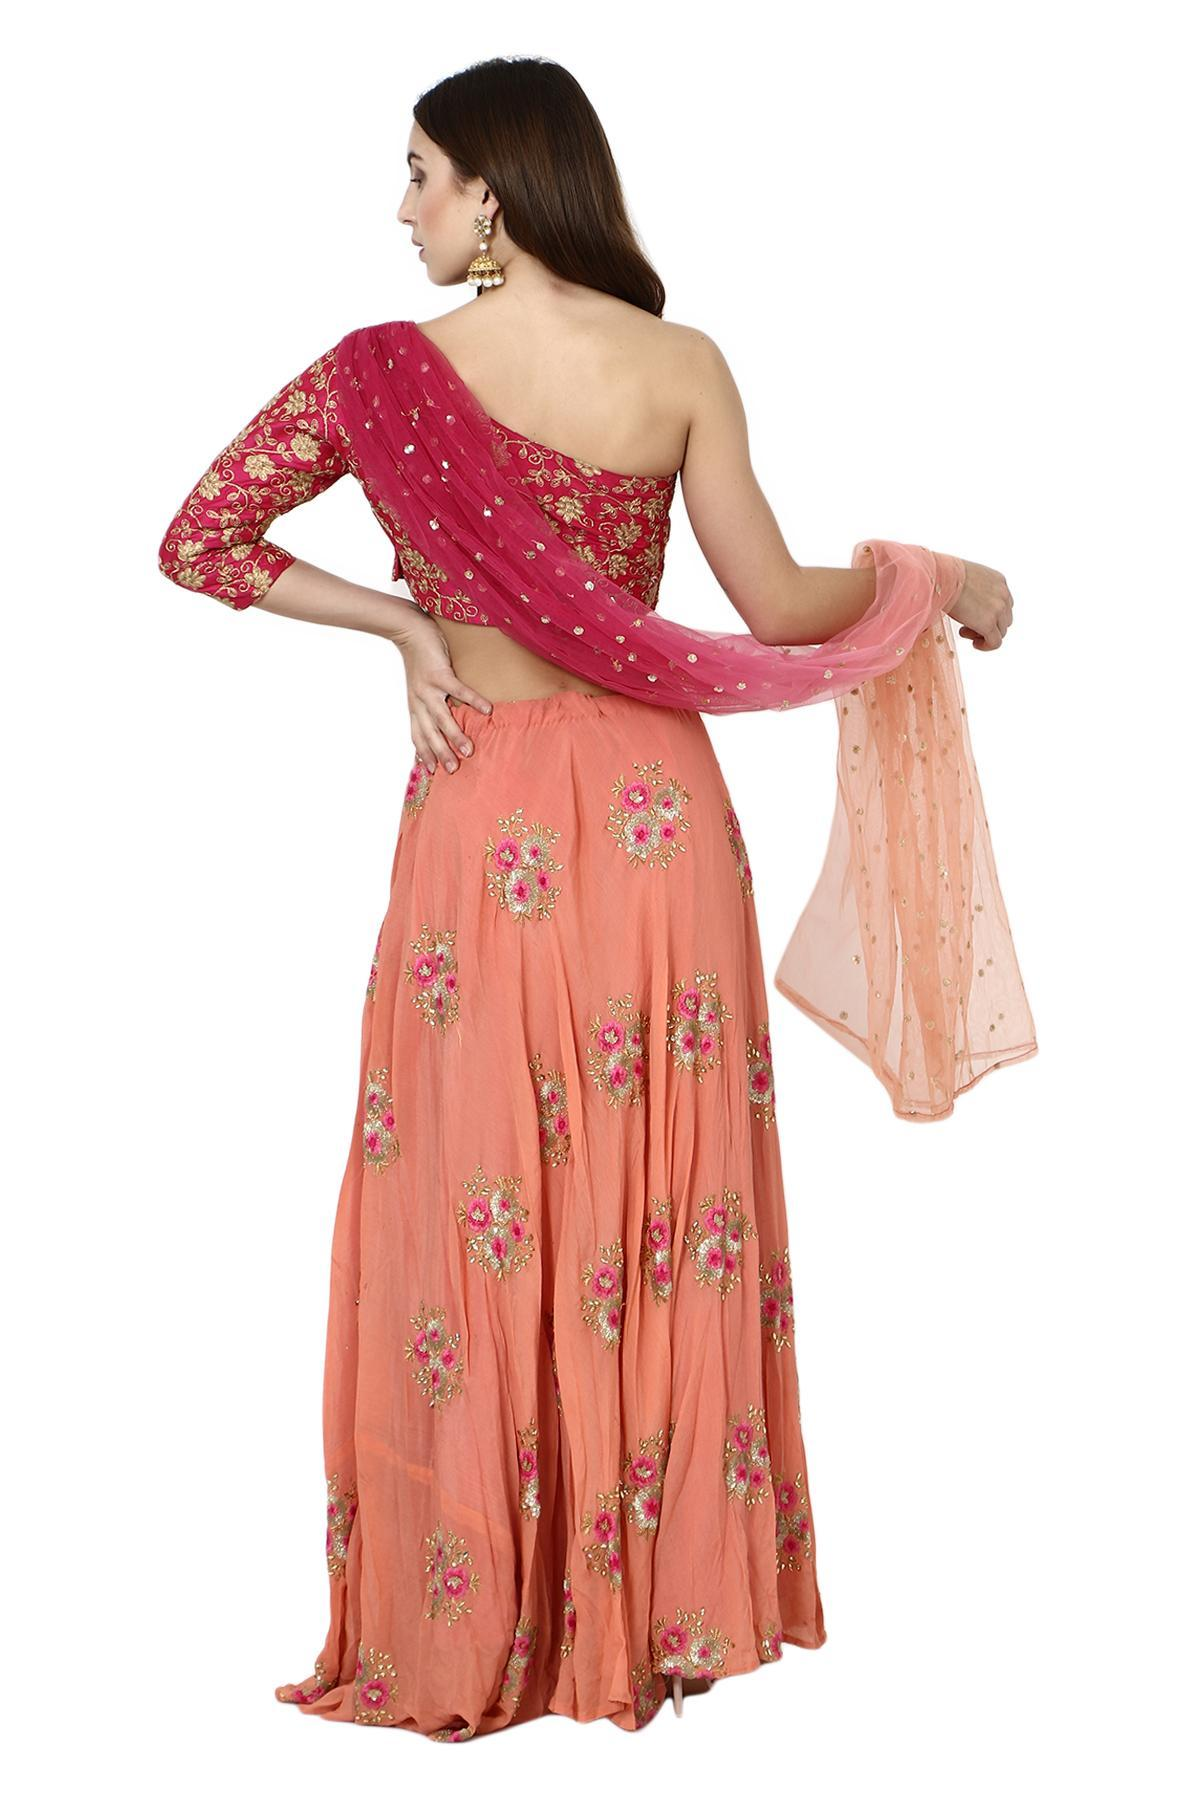 2d148a28913253 ... Aaina by aditi ethnic One Shoulder Crop Top & Skirt Magenta & Peach  ethnic-crop ...